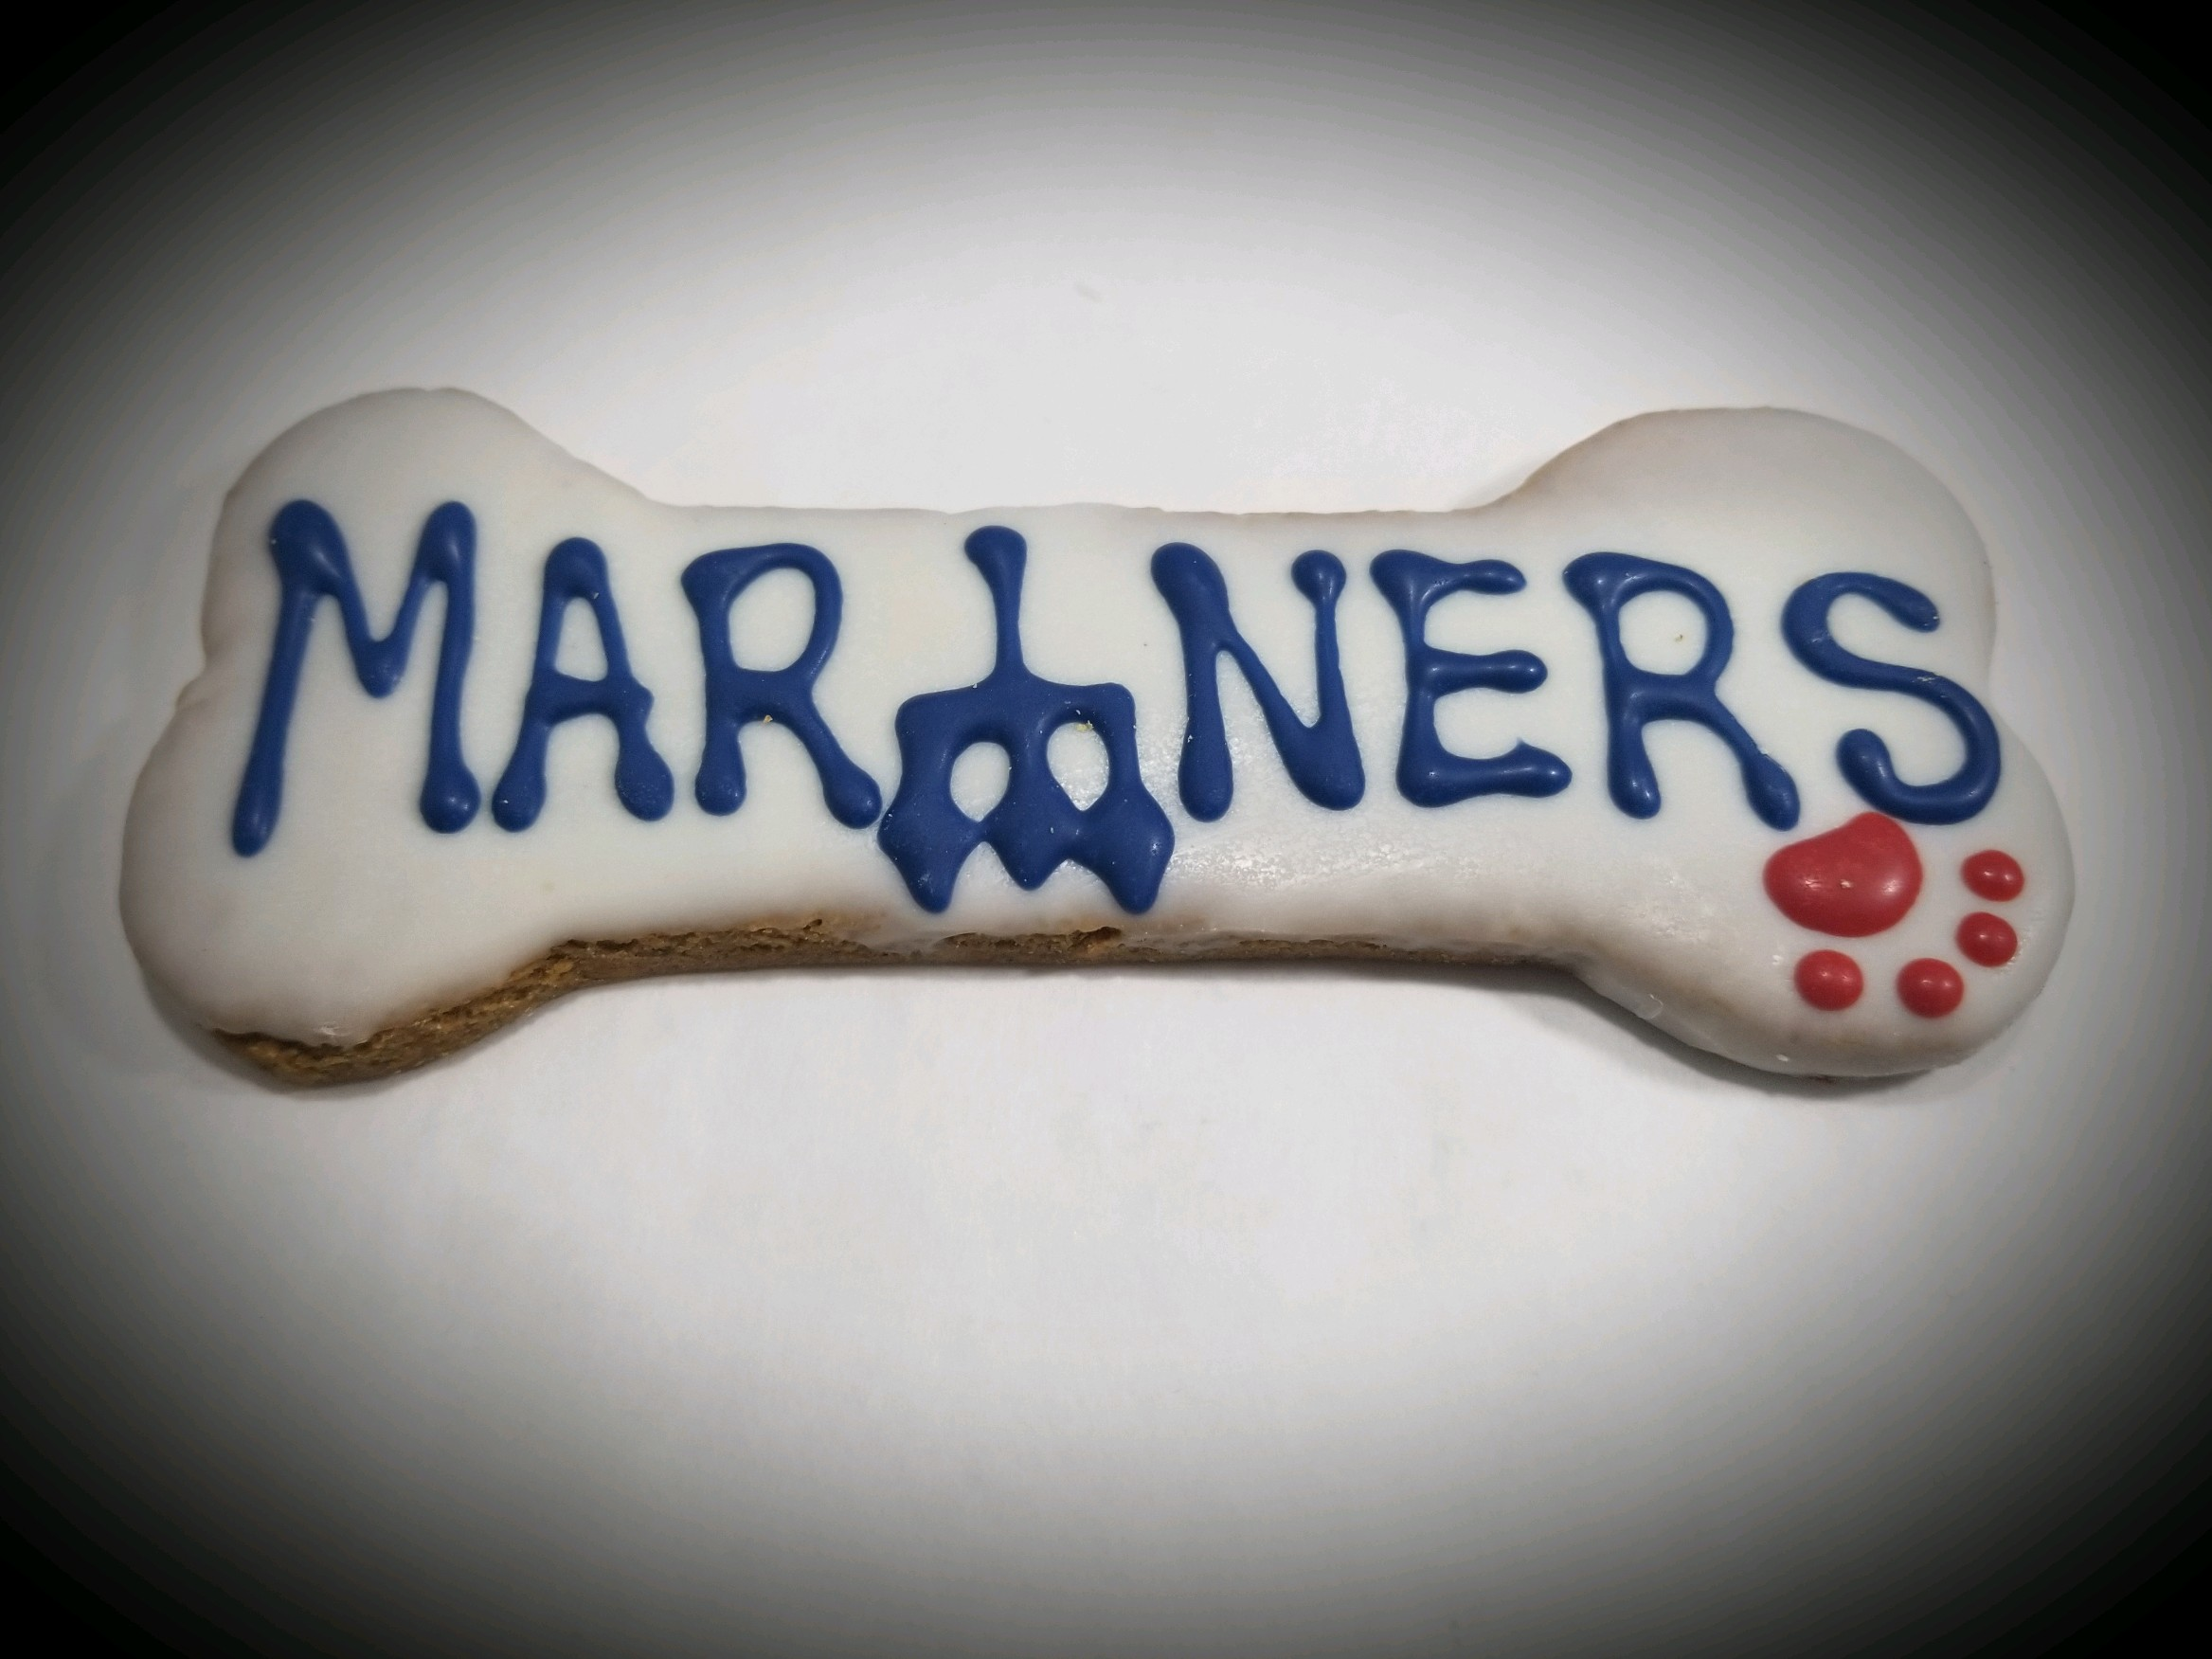 Mariners Bones - Tray of 10